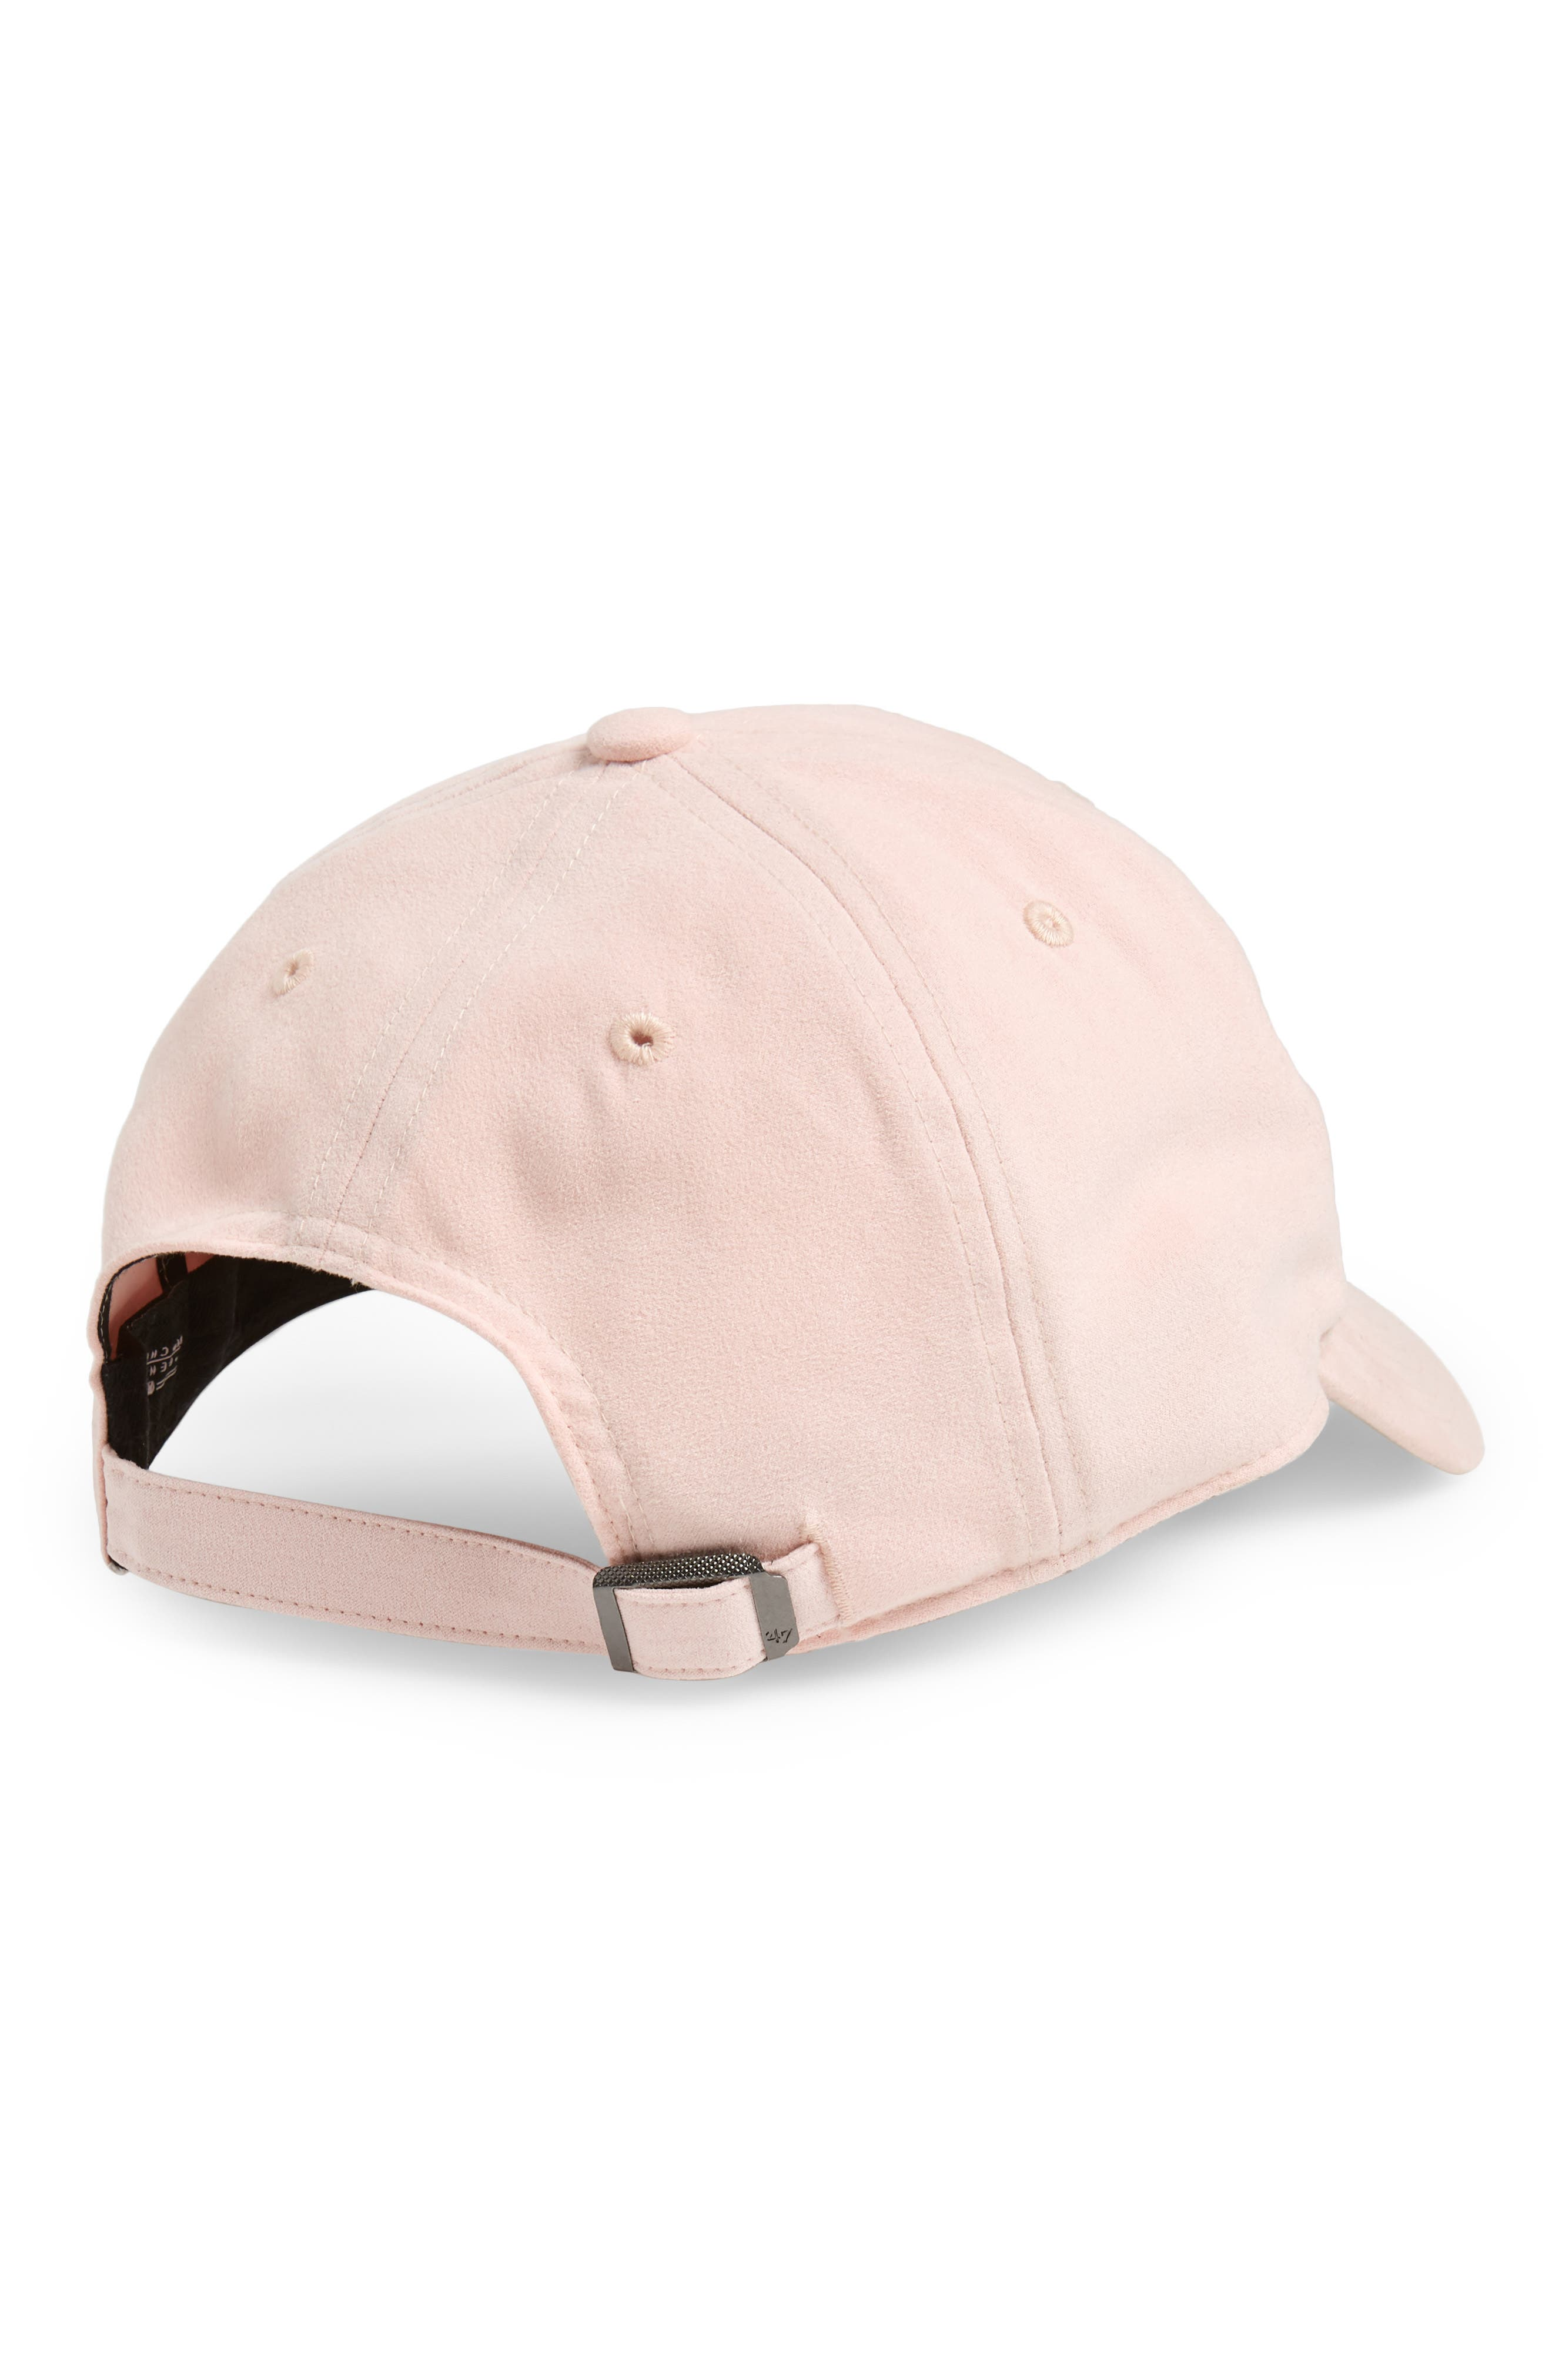 Ultrabasic Clean Up Los Angeles Dodgers Baseball Cap,                             Alternate thumbnail 2, color,                             Pink